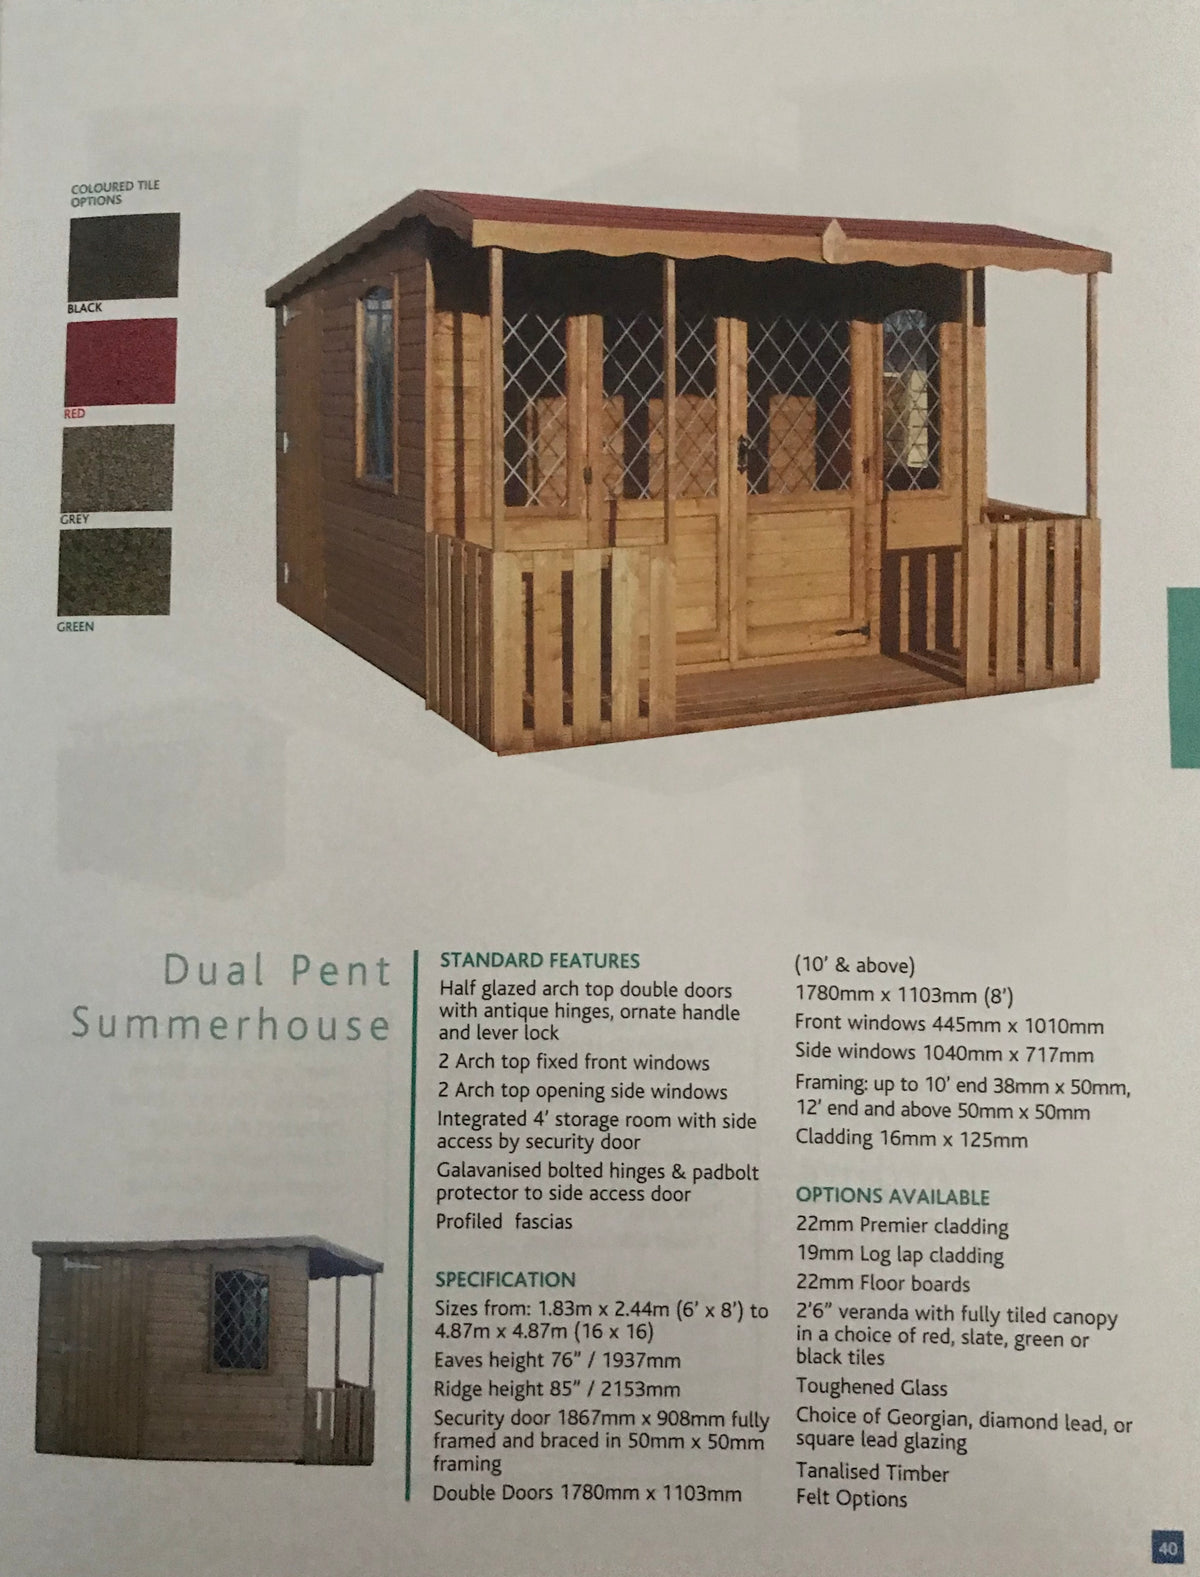 Dual Pent Summerhouse